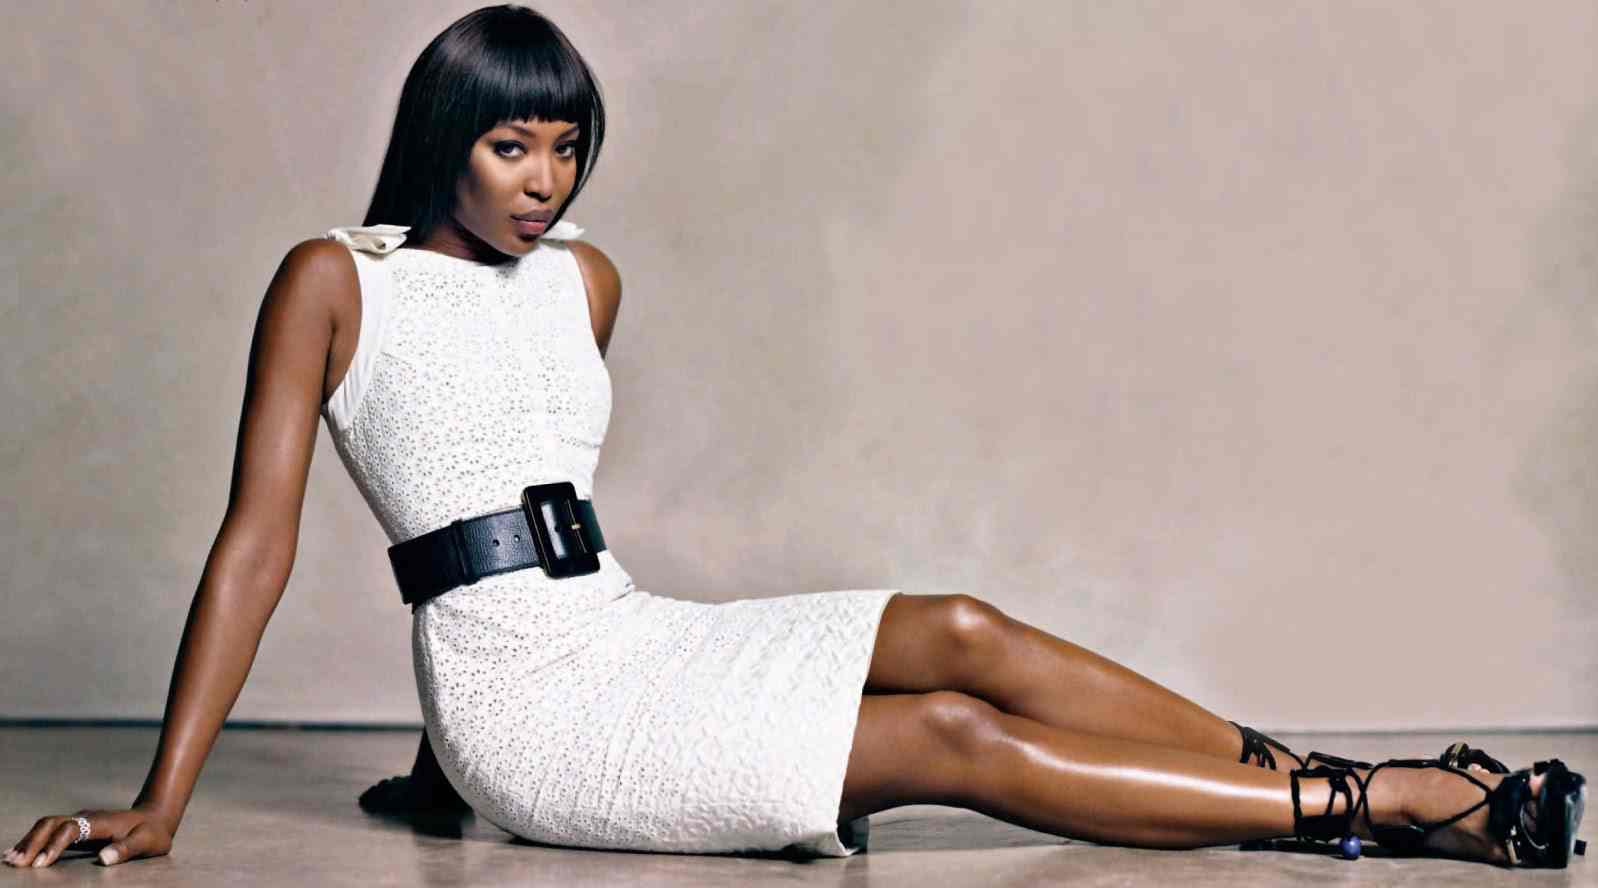 wp-image-721355091-naomi-campbell-wallpapers - Live Civil